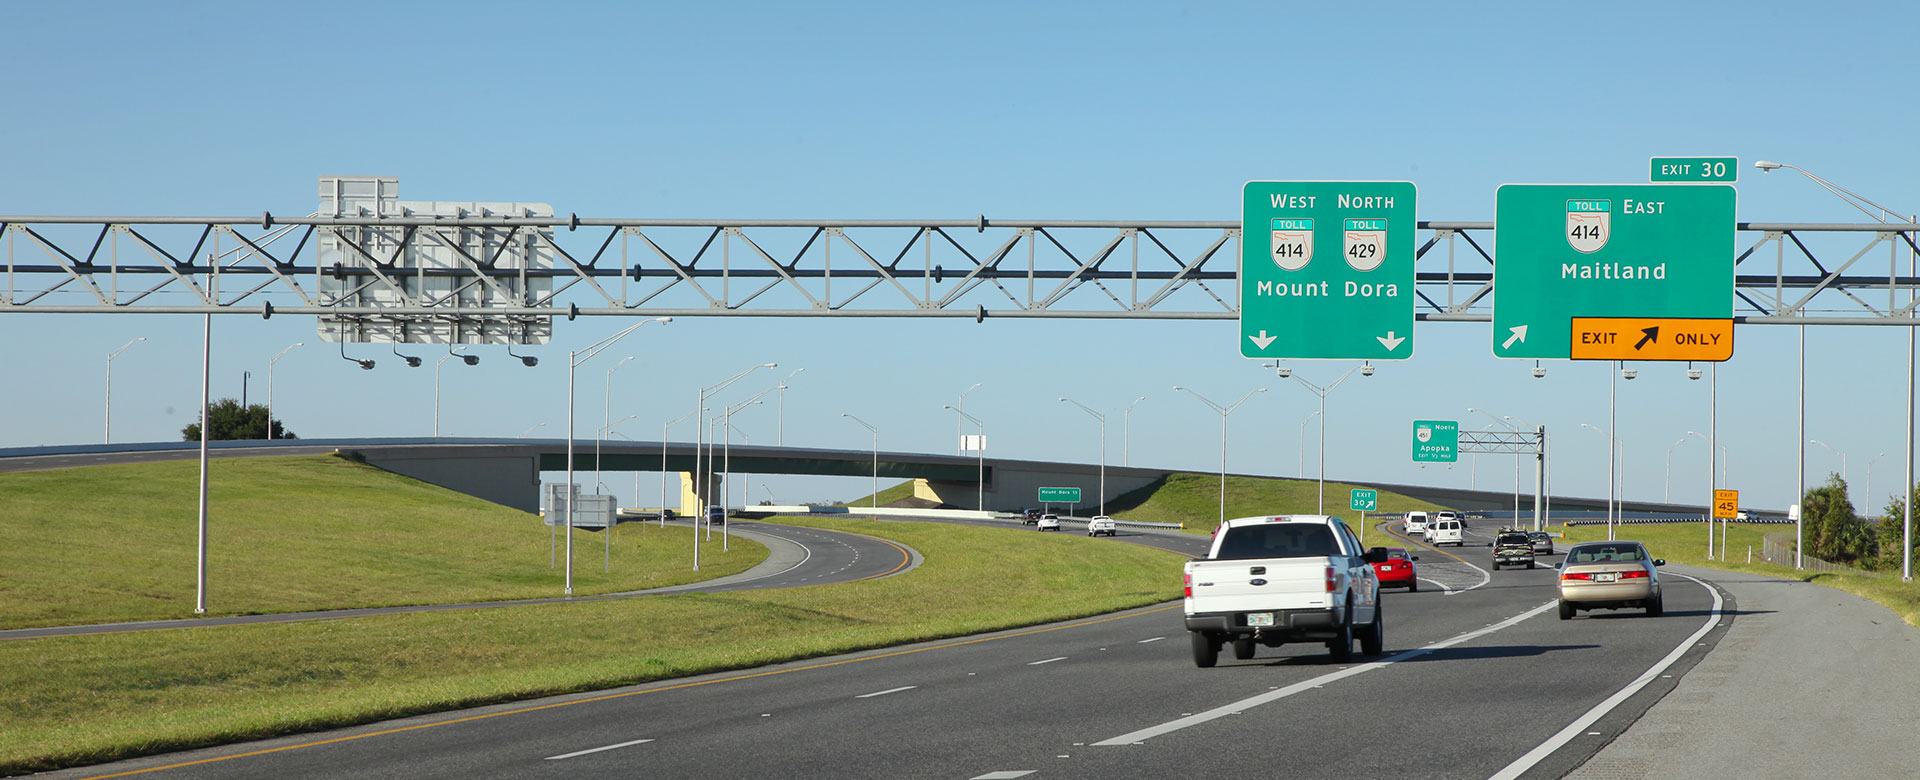 Central Florida Expressway toll road 429 at toll road 414 interchange